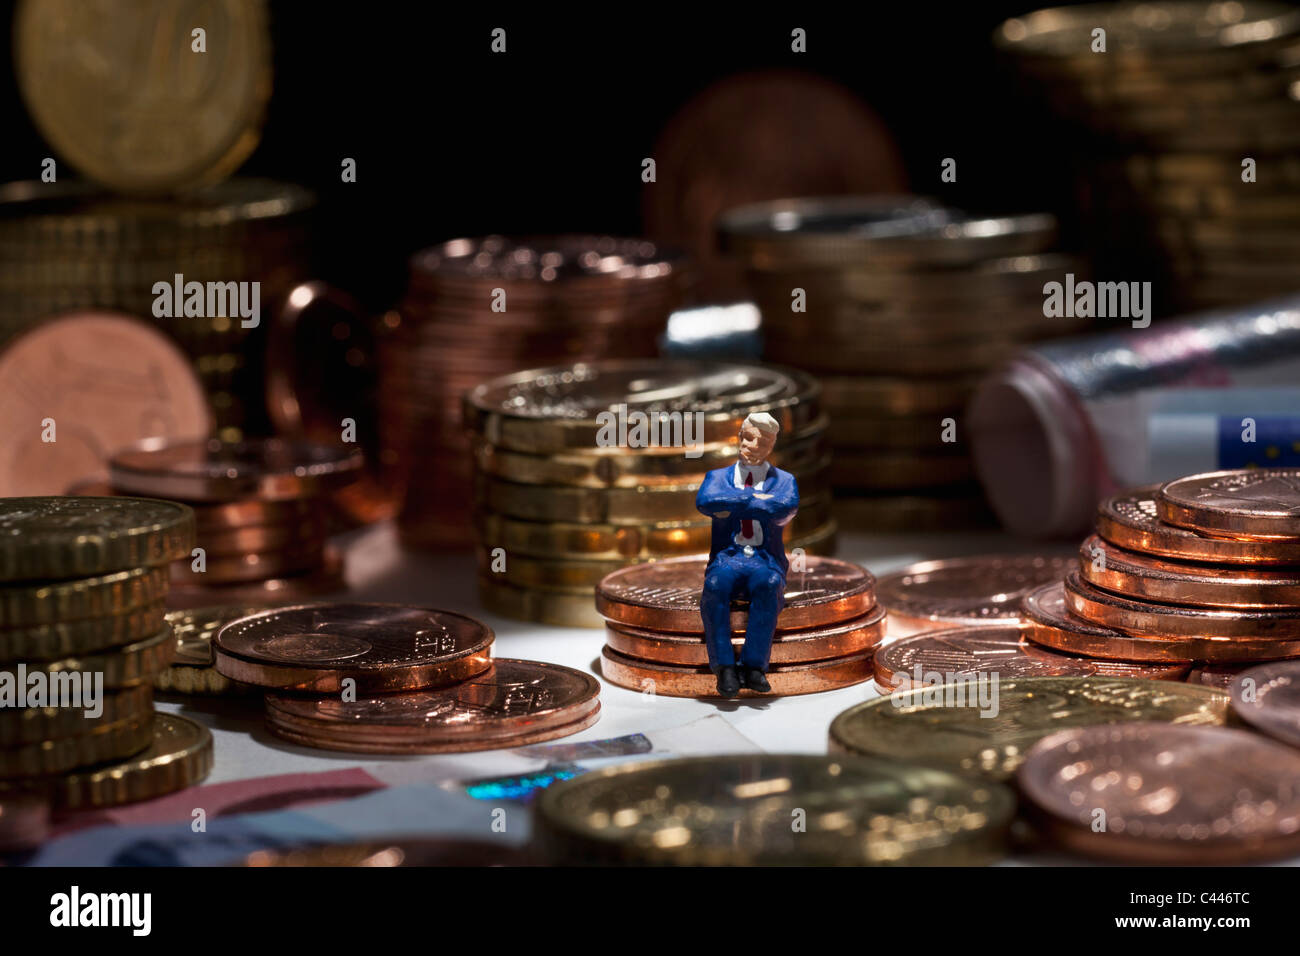 A miniature businessman figurine with arms crossed sitting on a stack of coins - Stock Image